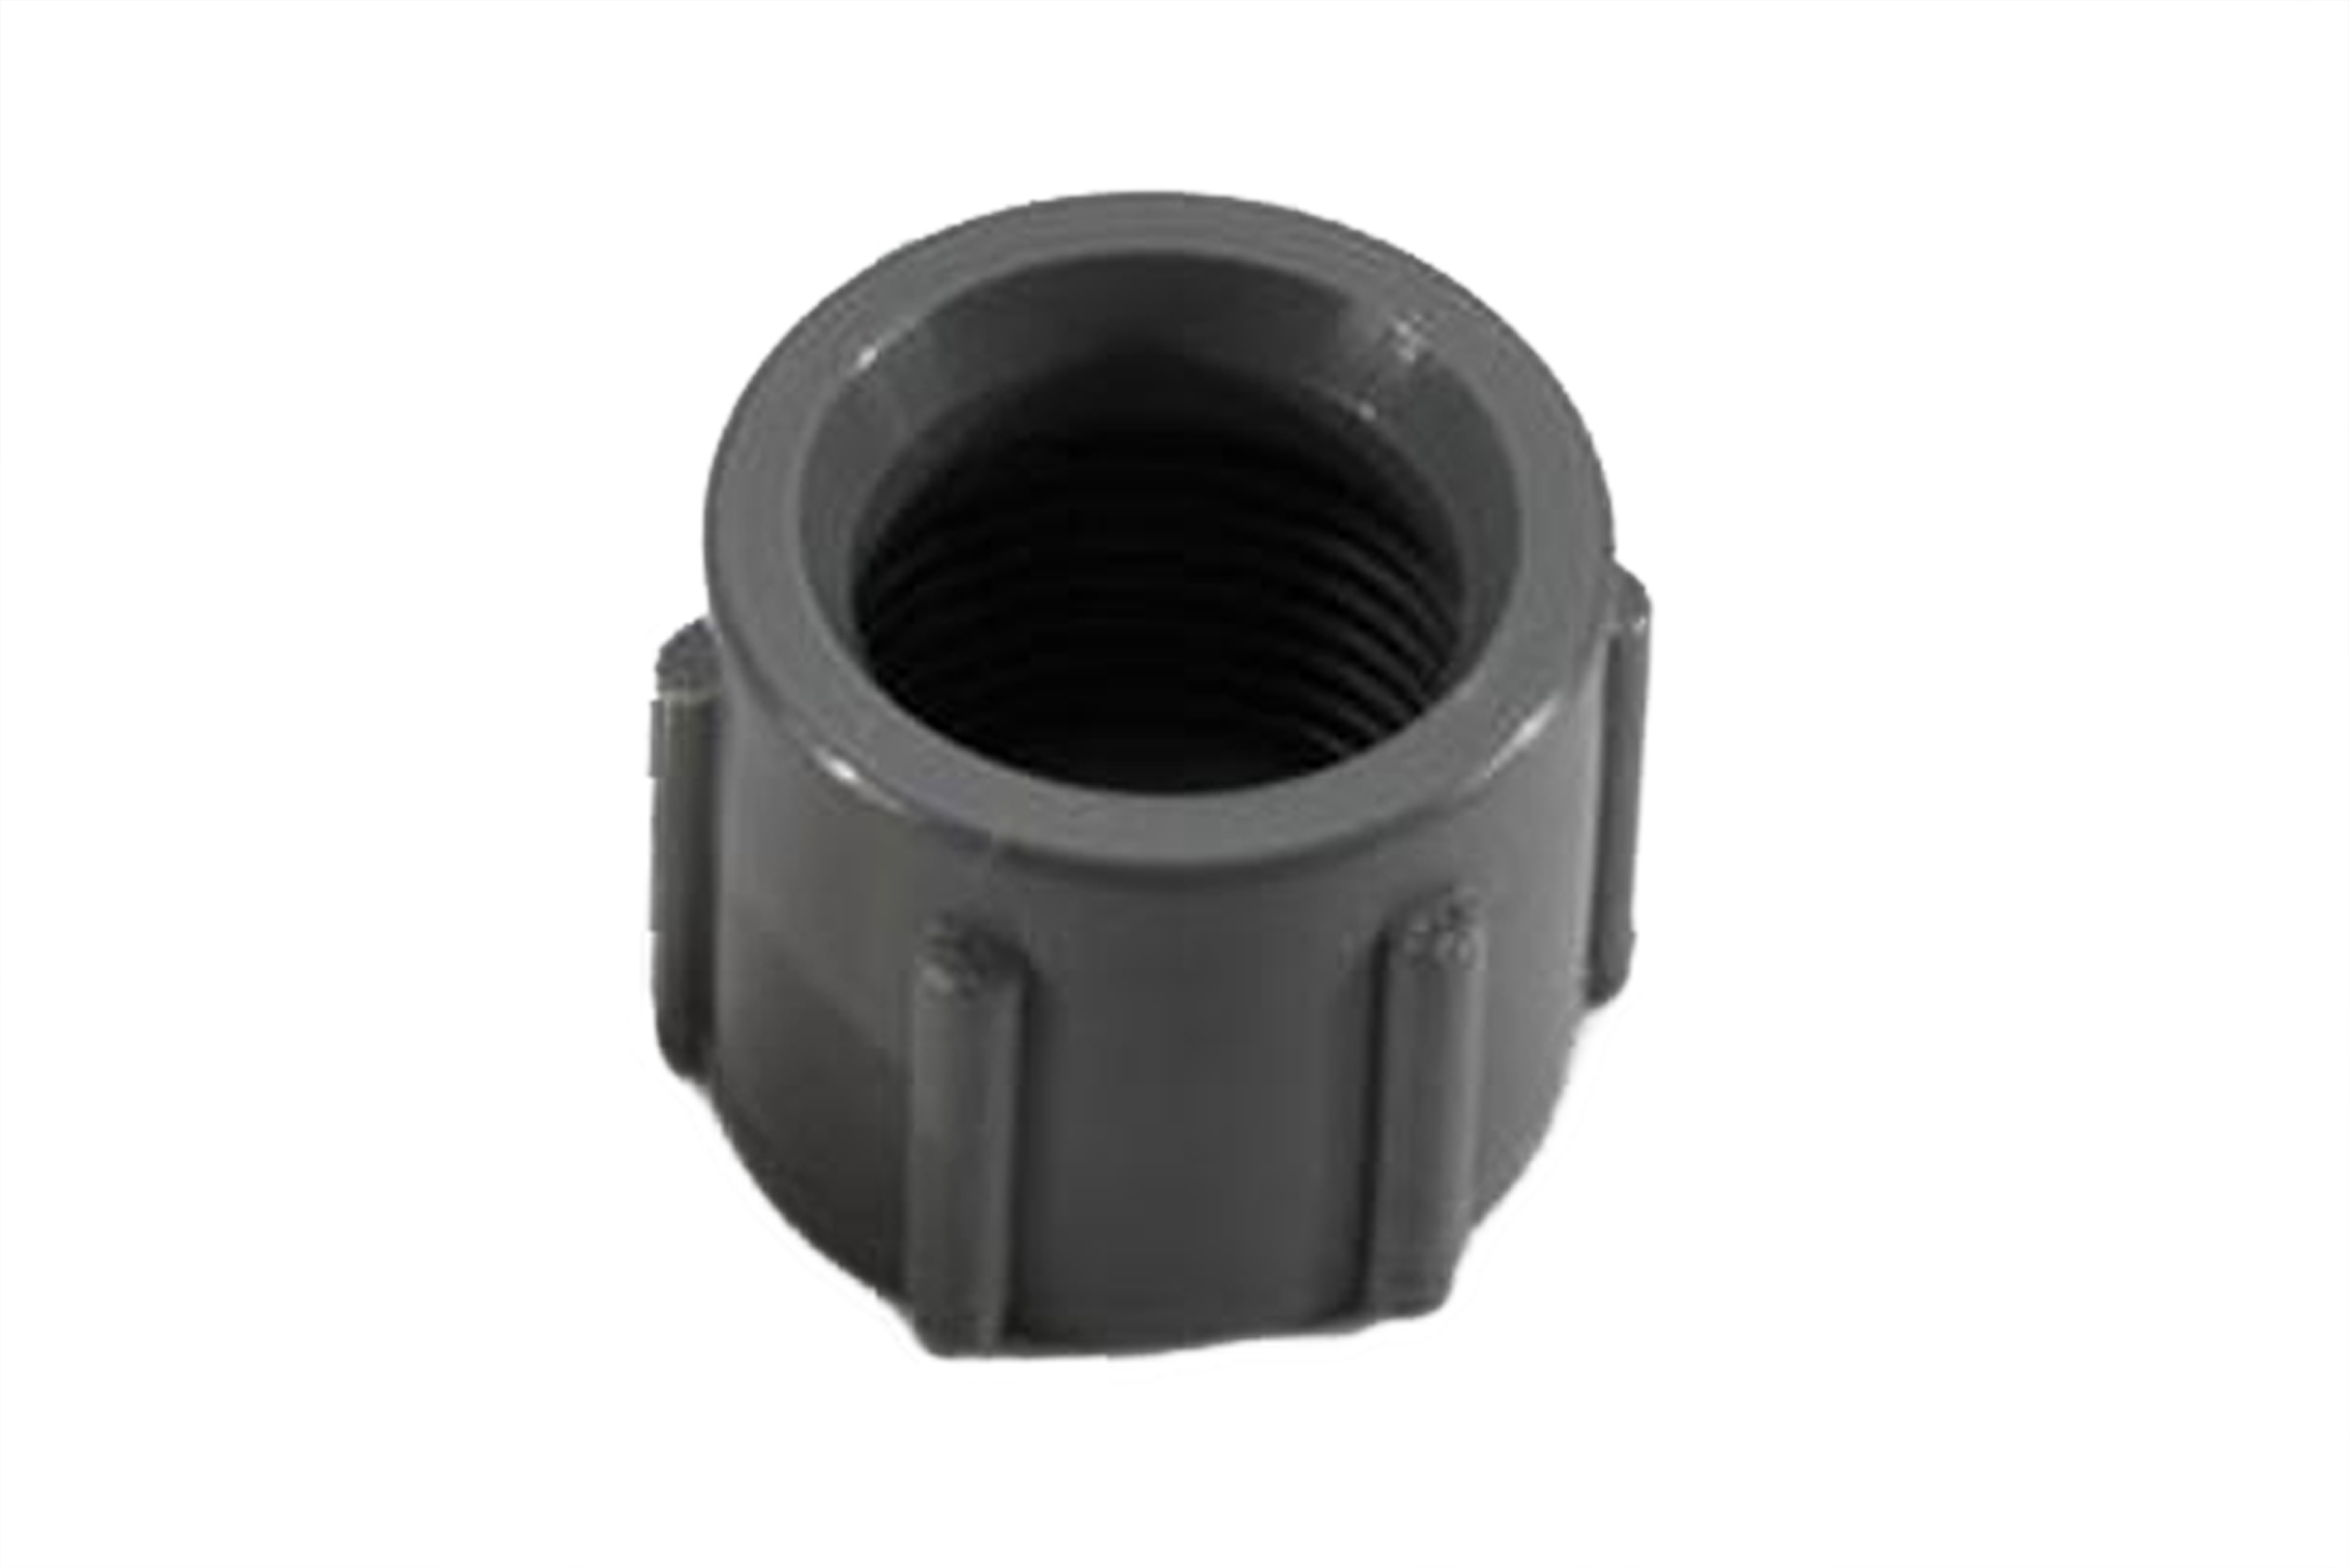 06314 Elkhart Supply Tube End Fitting Nut 1/2 Inch